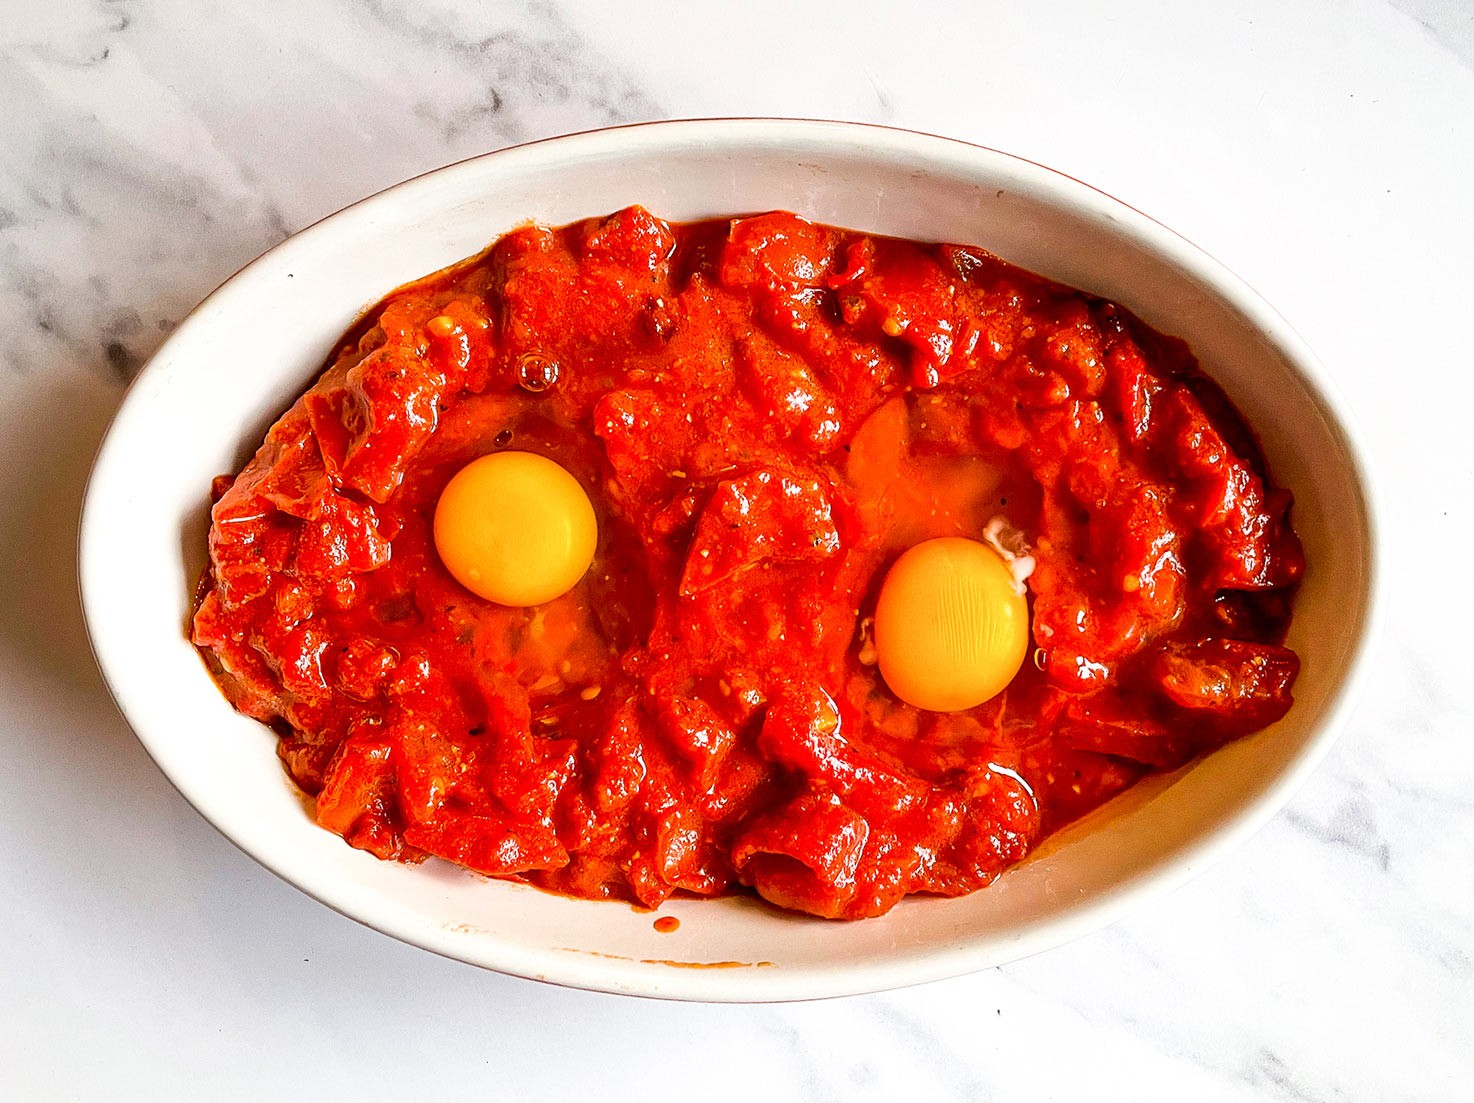 The tomato mixture is transferred into the ovenproof dish with eggs that is on the table #tomato passata #olive oil | hurrythefoodup.com